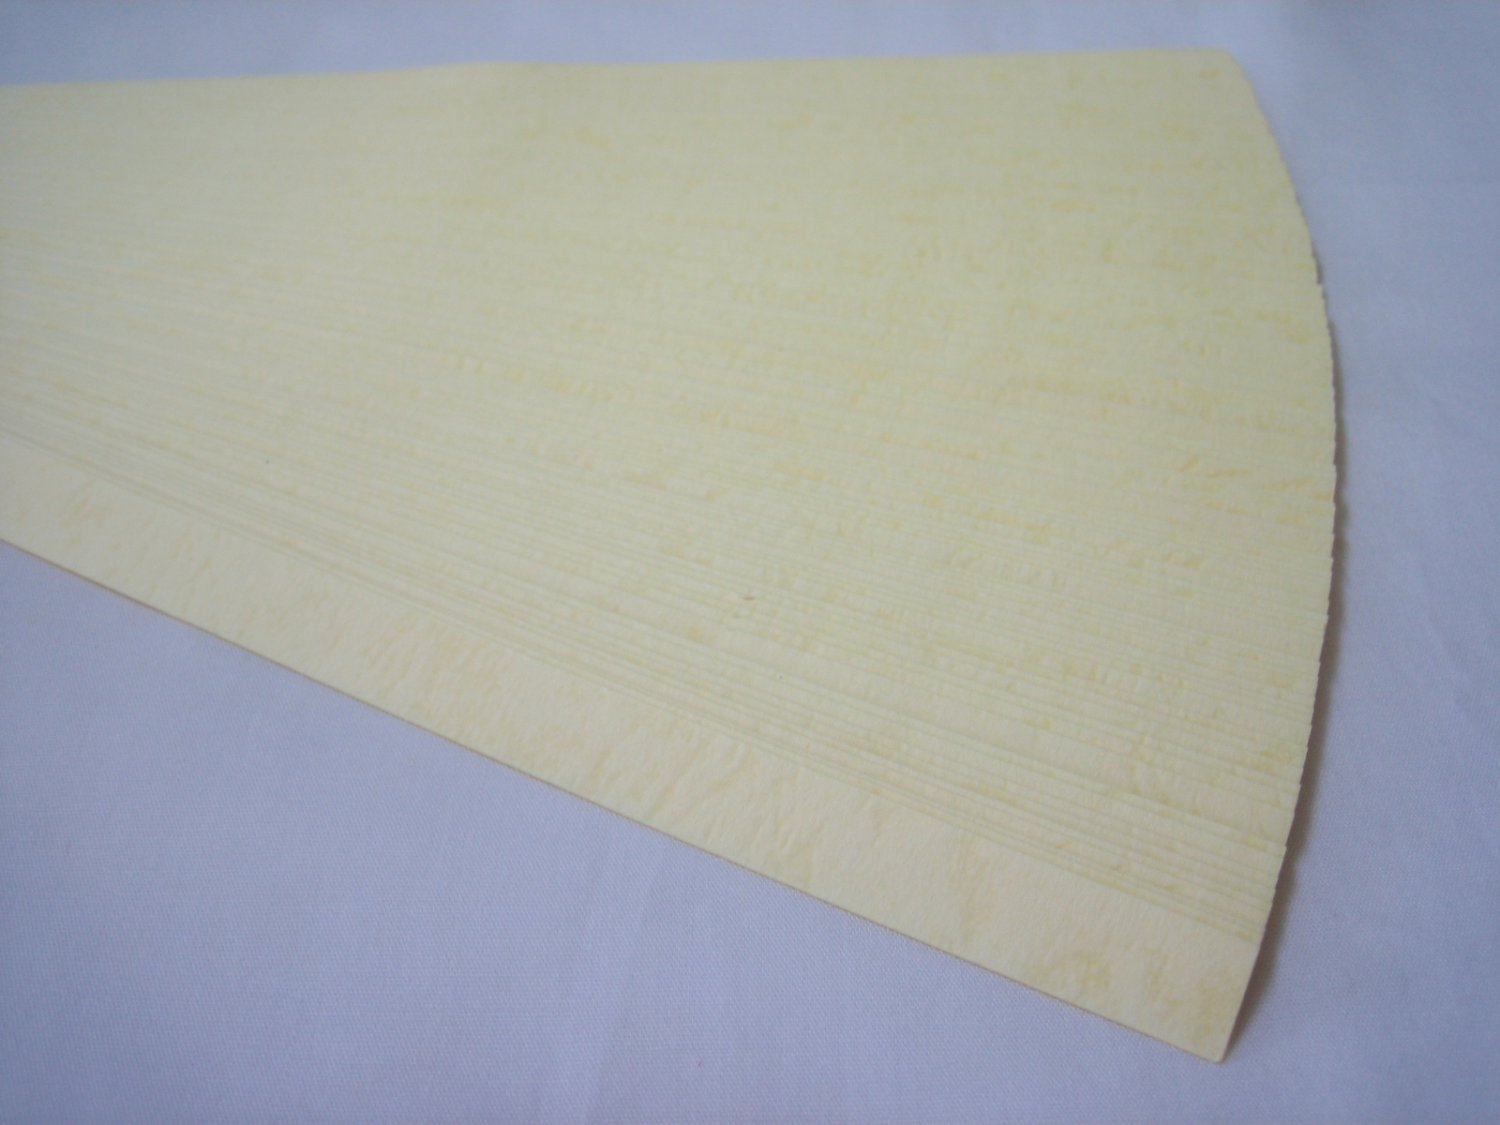 100 strips Embossed Pale Yellow Origami Folding Lucky Star Paper Strips